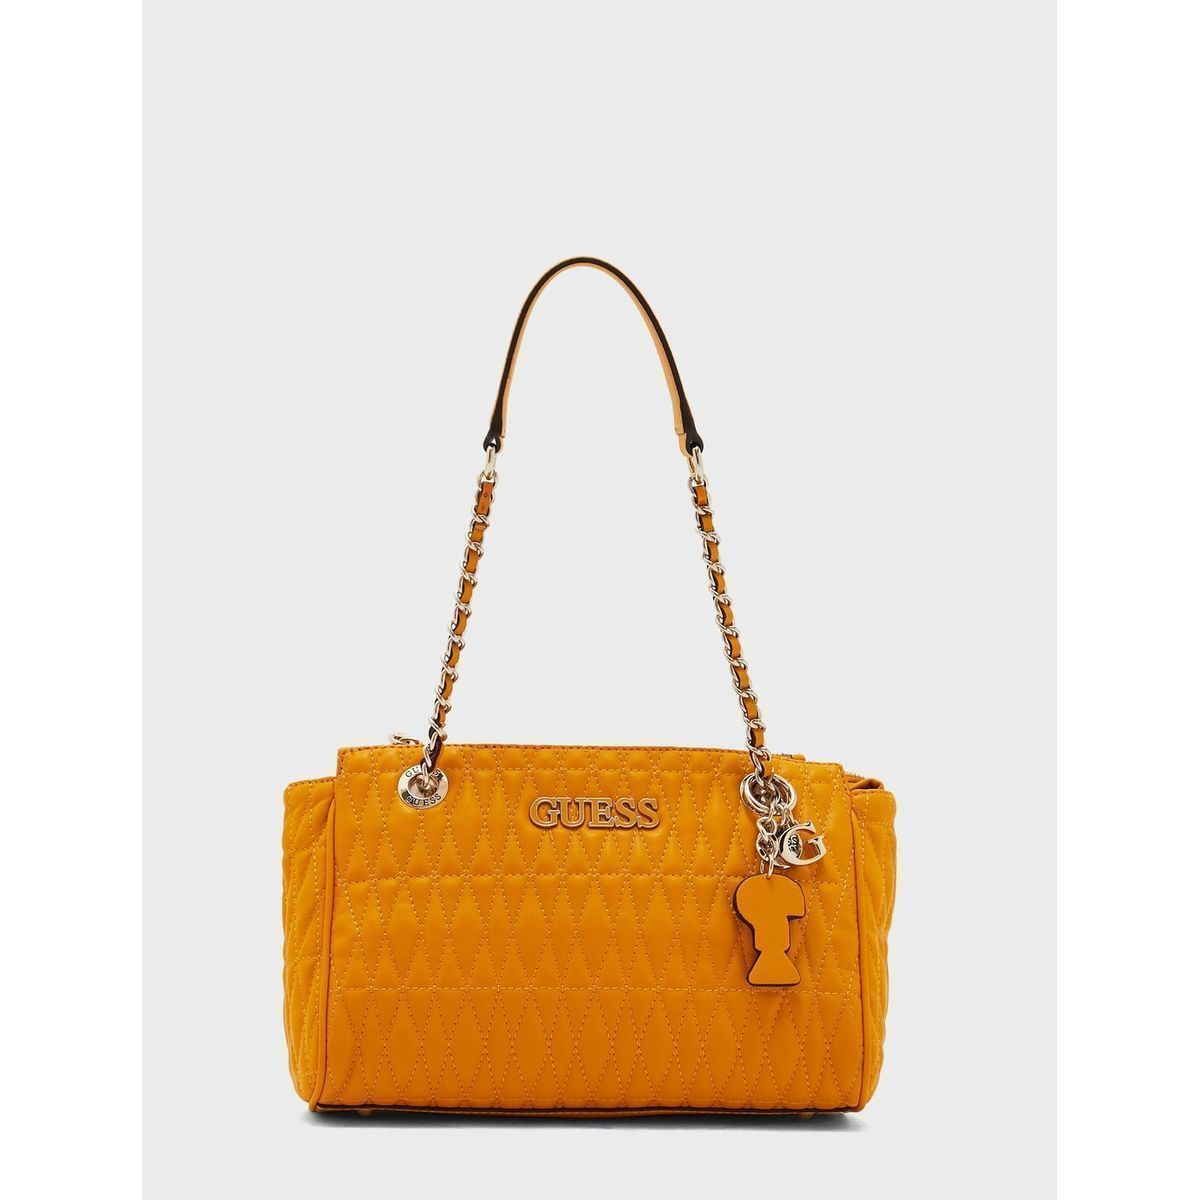 GUESS BRINKLEY SOCIETY SATCHEL